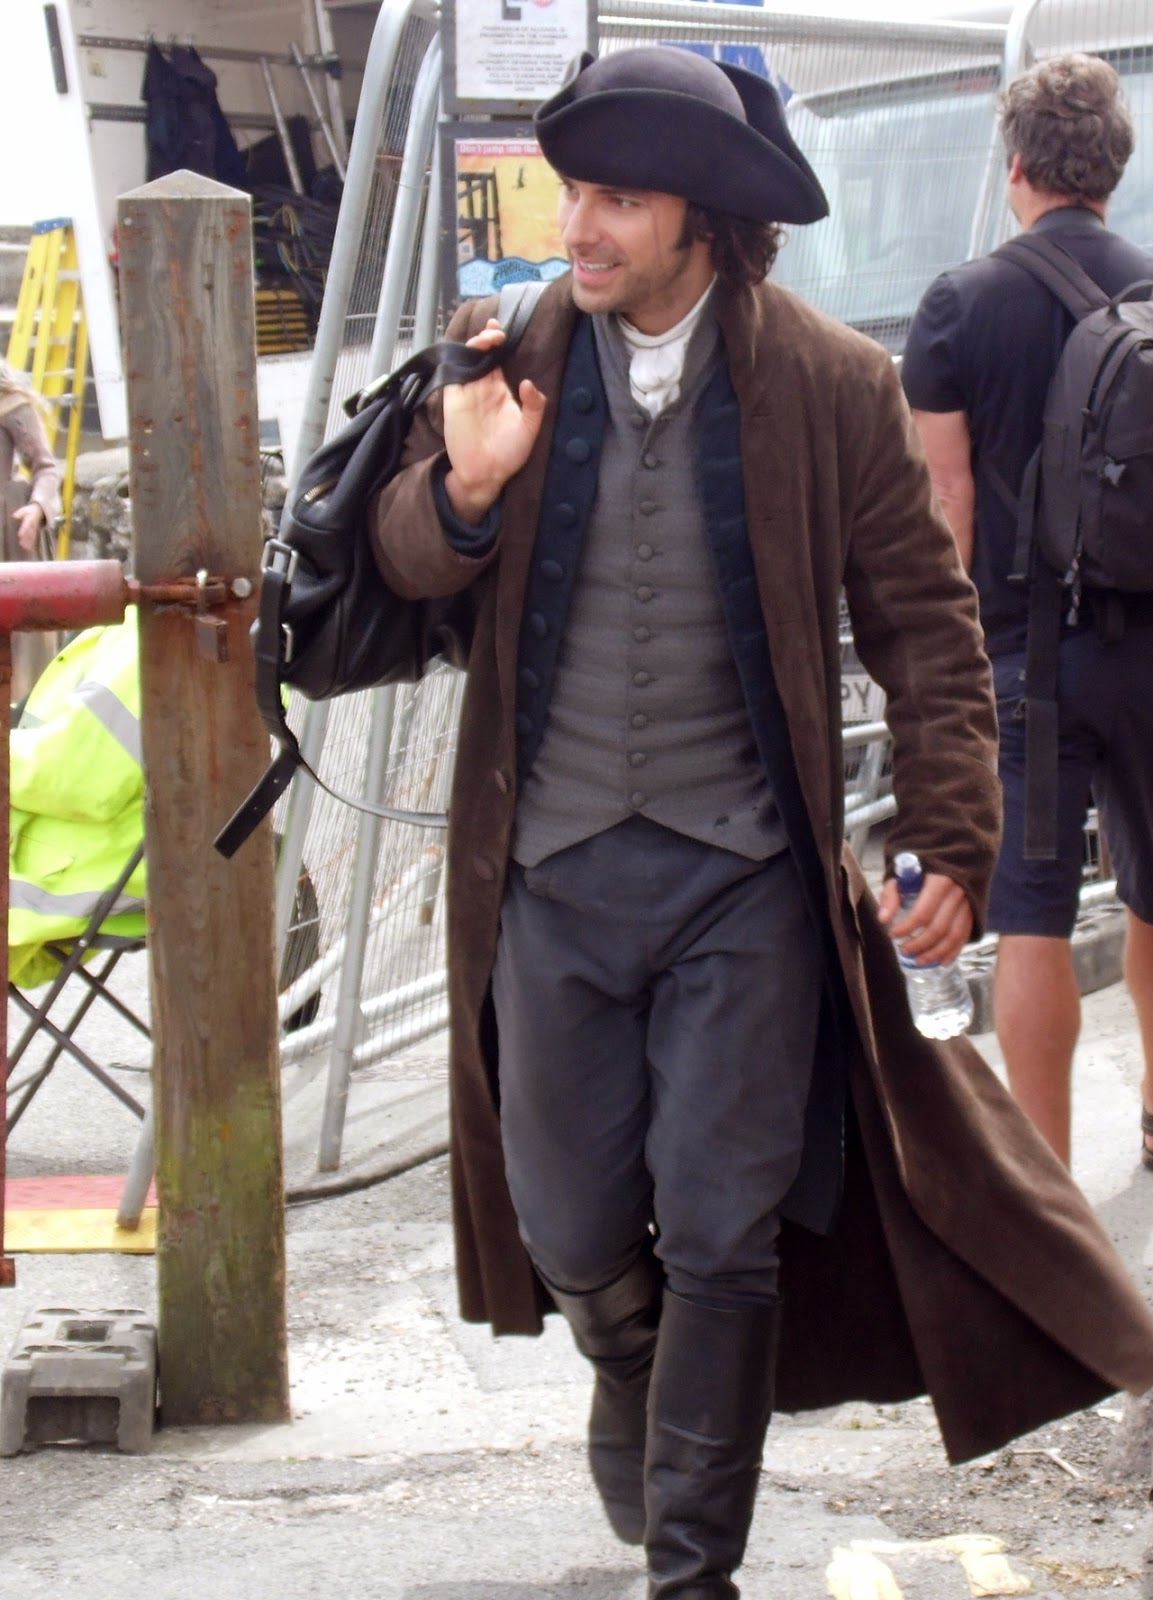 Filming In Progress The Most Beautiful Actress In The World: Poldarked: Aidan Turner Filming Poldark In Charlestown